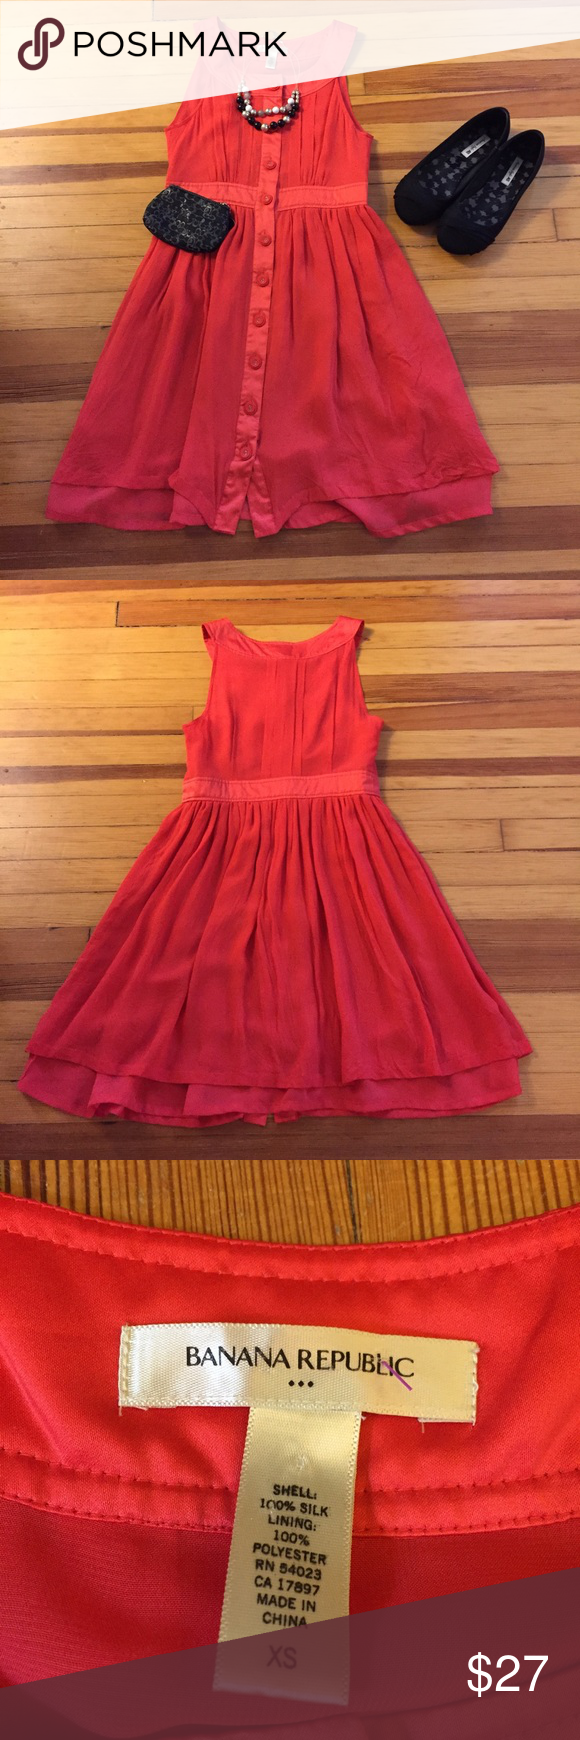 "Banana Republic red sleeveless crepe dress sz XS ▫️Banana Republic red sleeveless a-line dress sz XS ▫️crepe like material ▫️10 fully functional buttons along the center front ▫️no zipper ▫️small dirt stain on the interior lining ▫️shell = 100% silk; lining = 100% polyester ▫️bust = 31""; waist = 26""; Length = 31"" Banana Republic Dresses Midi"